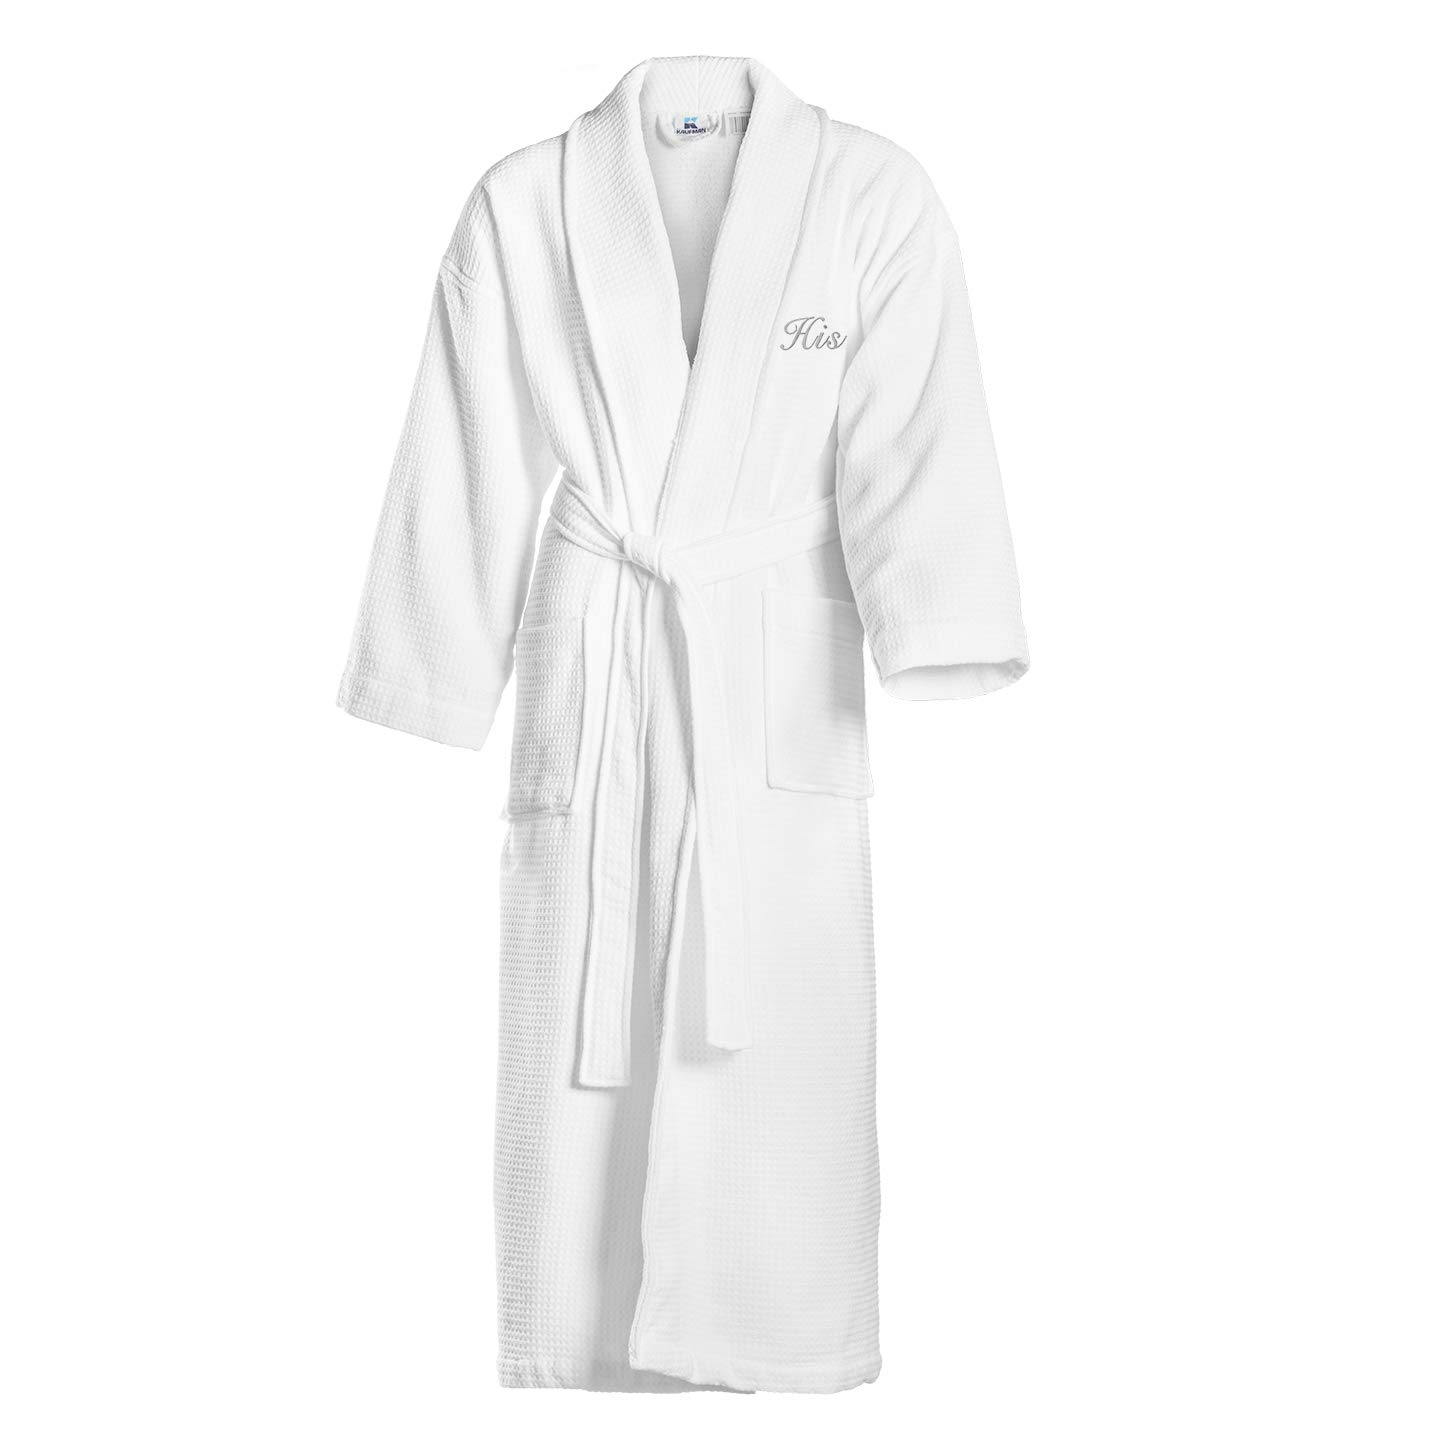 Kaufman - Terry Cloth Bathrobes 100% Cotton - His and Hers Embroidered Waffle Shawl Set of Robes with His and Hers White Towel Set 30''x58'' 4-PK by Ben Kaufman Sales (Image #2)